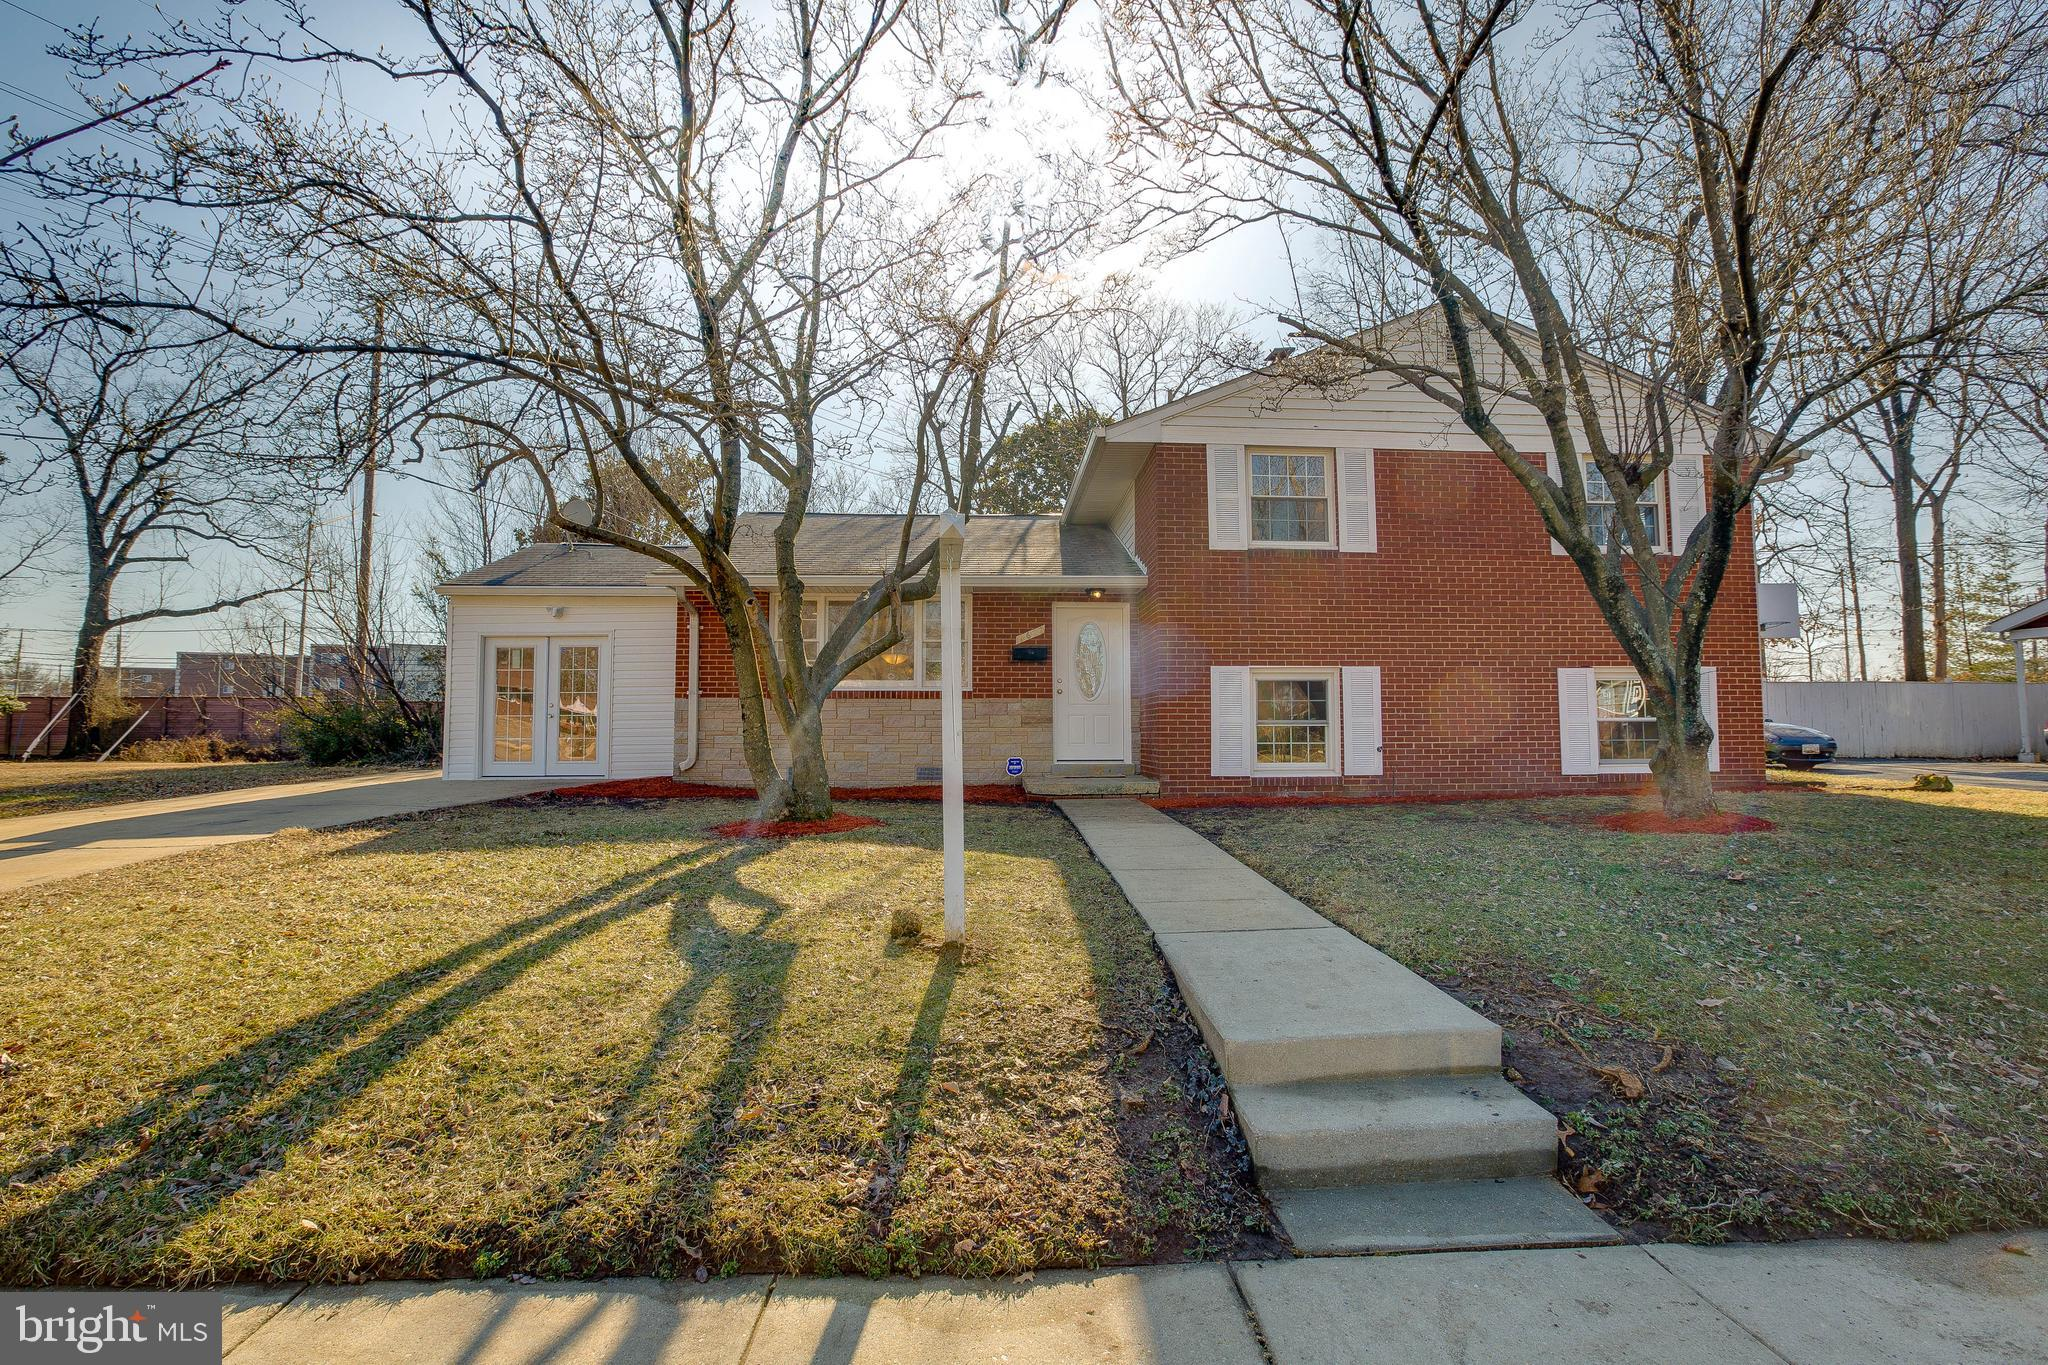 6623 LACONA STREET, DISTRICT HEIGHTS, MD 20747